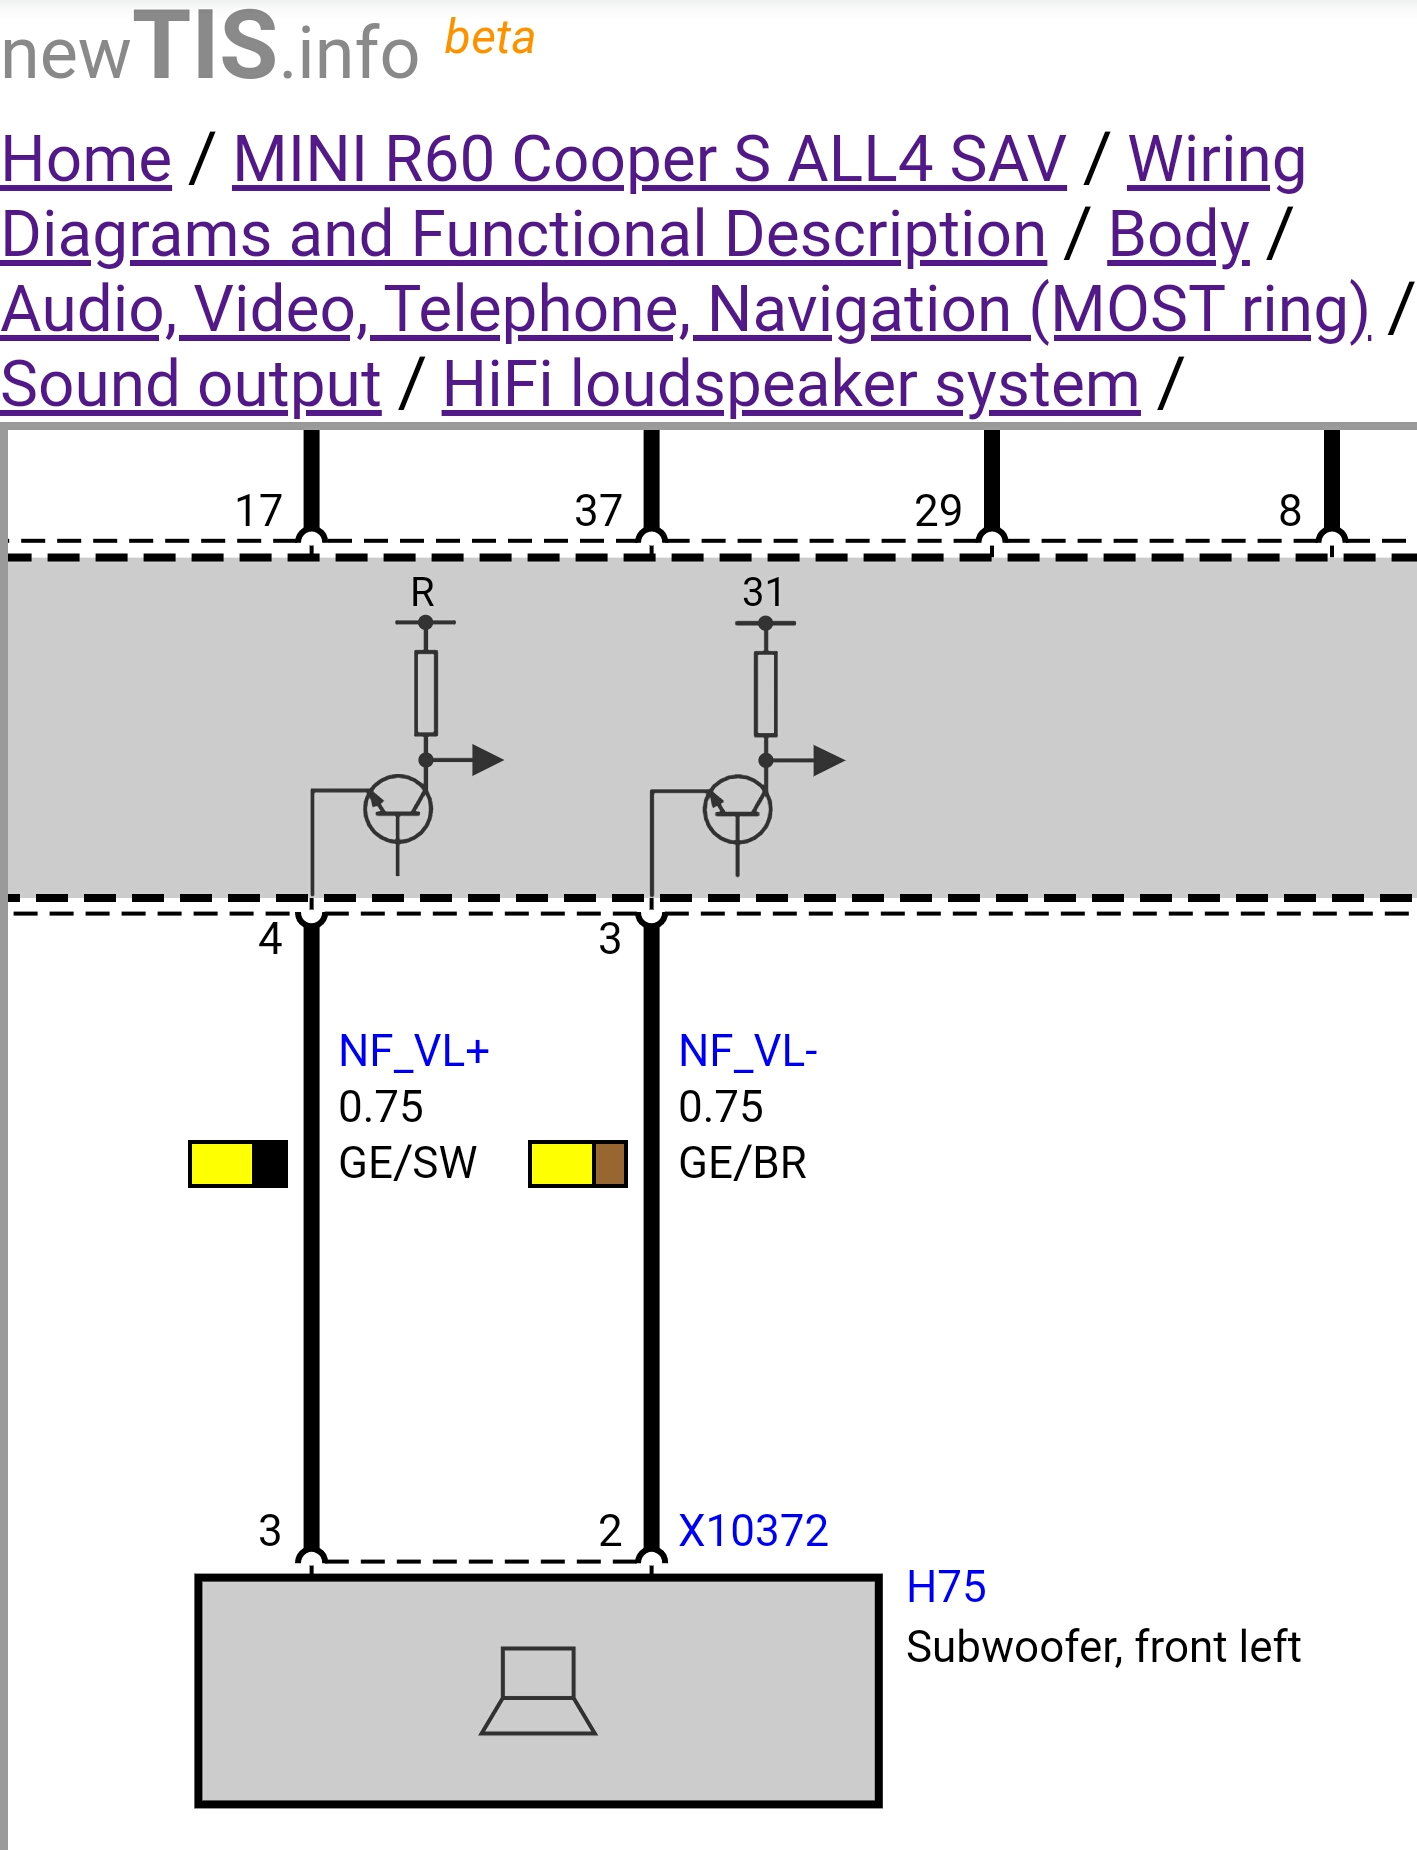 subwoofer amp wiring diagram r60 need help with hk amp wiring north american motoring  r60 need help with hk amp wiring